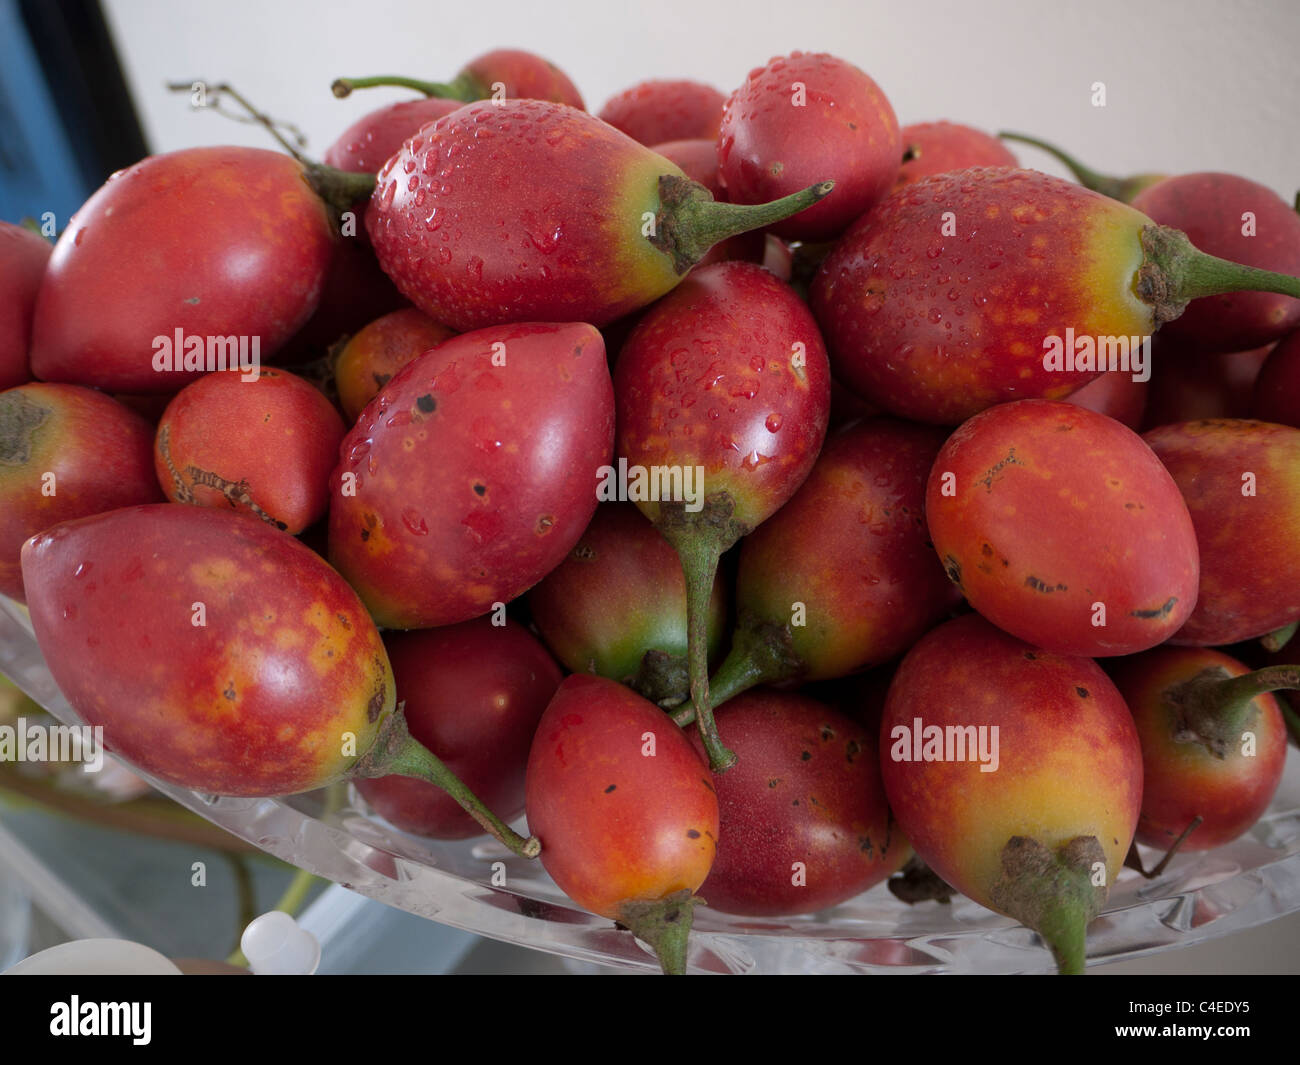 A bowl of num-num fruit, otherwise known as Carissa indigenous to Africa and Asia - Stock Image